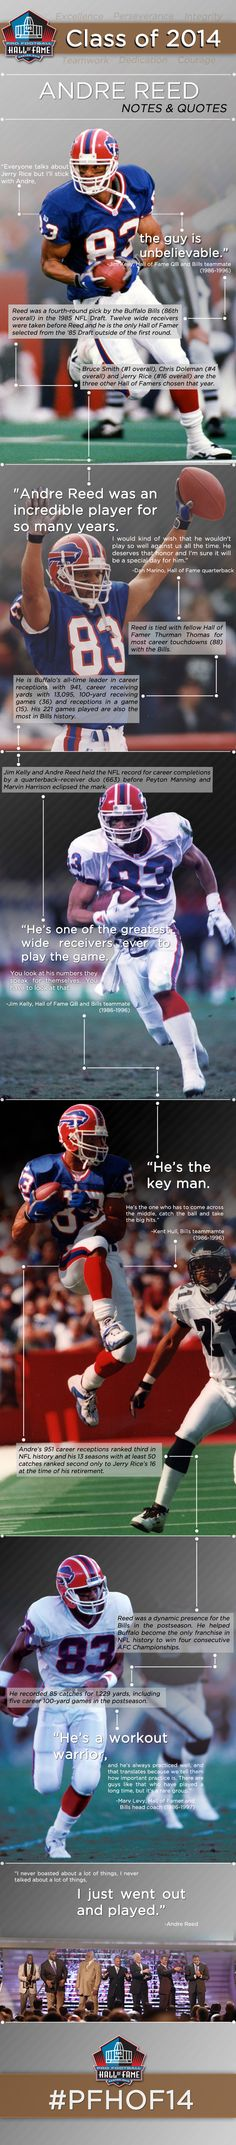 [Infographic] Notes & Quotes about the Pro Football Hall of Fame career of @buffalobills WR Andre Reed. #Bills